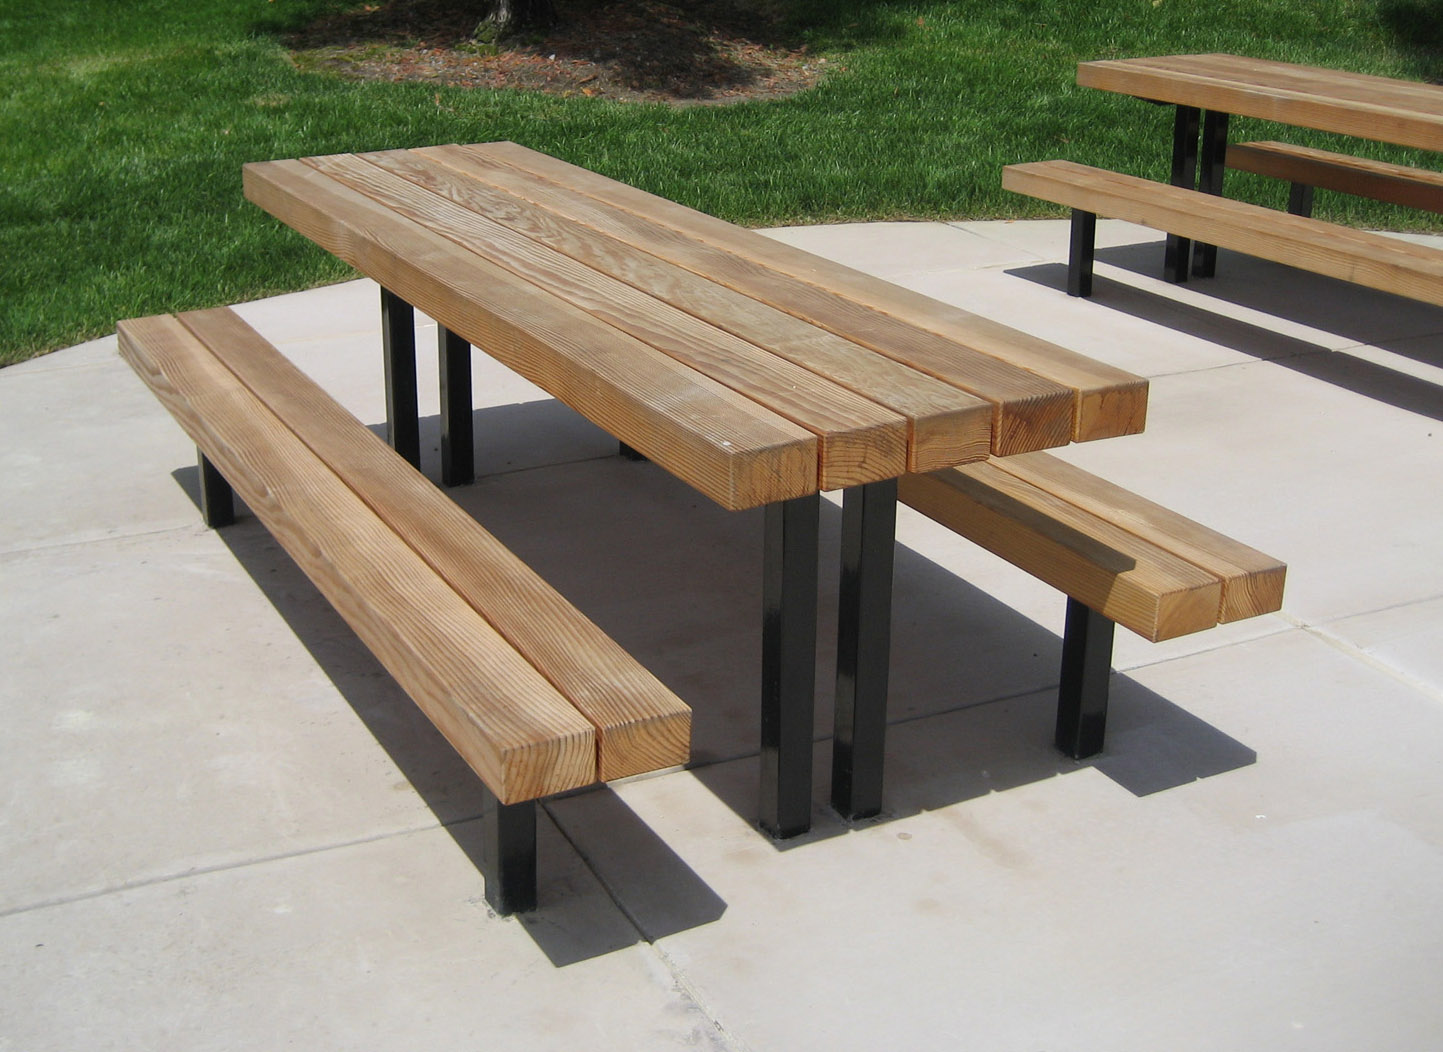 TimberForm Site Furnishings - Picnic table seats 8